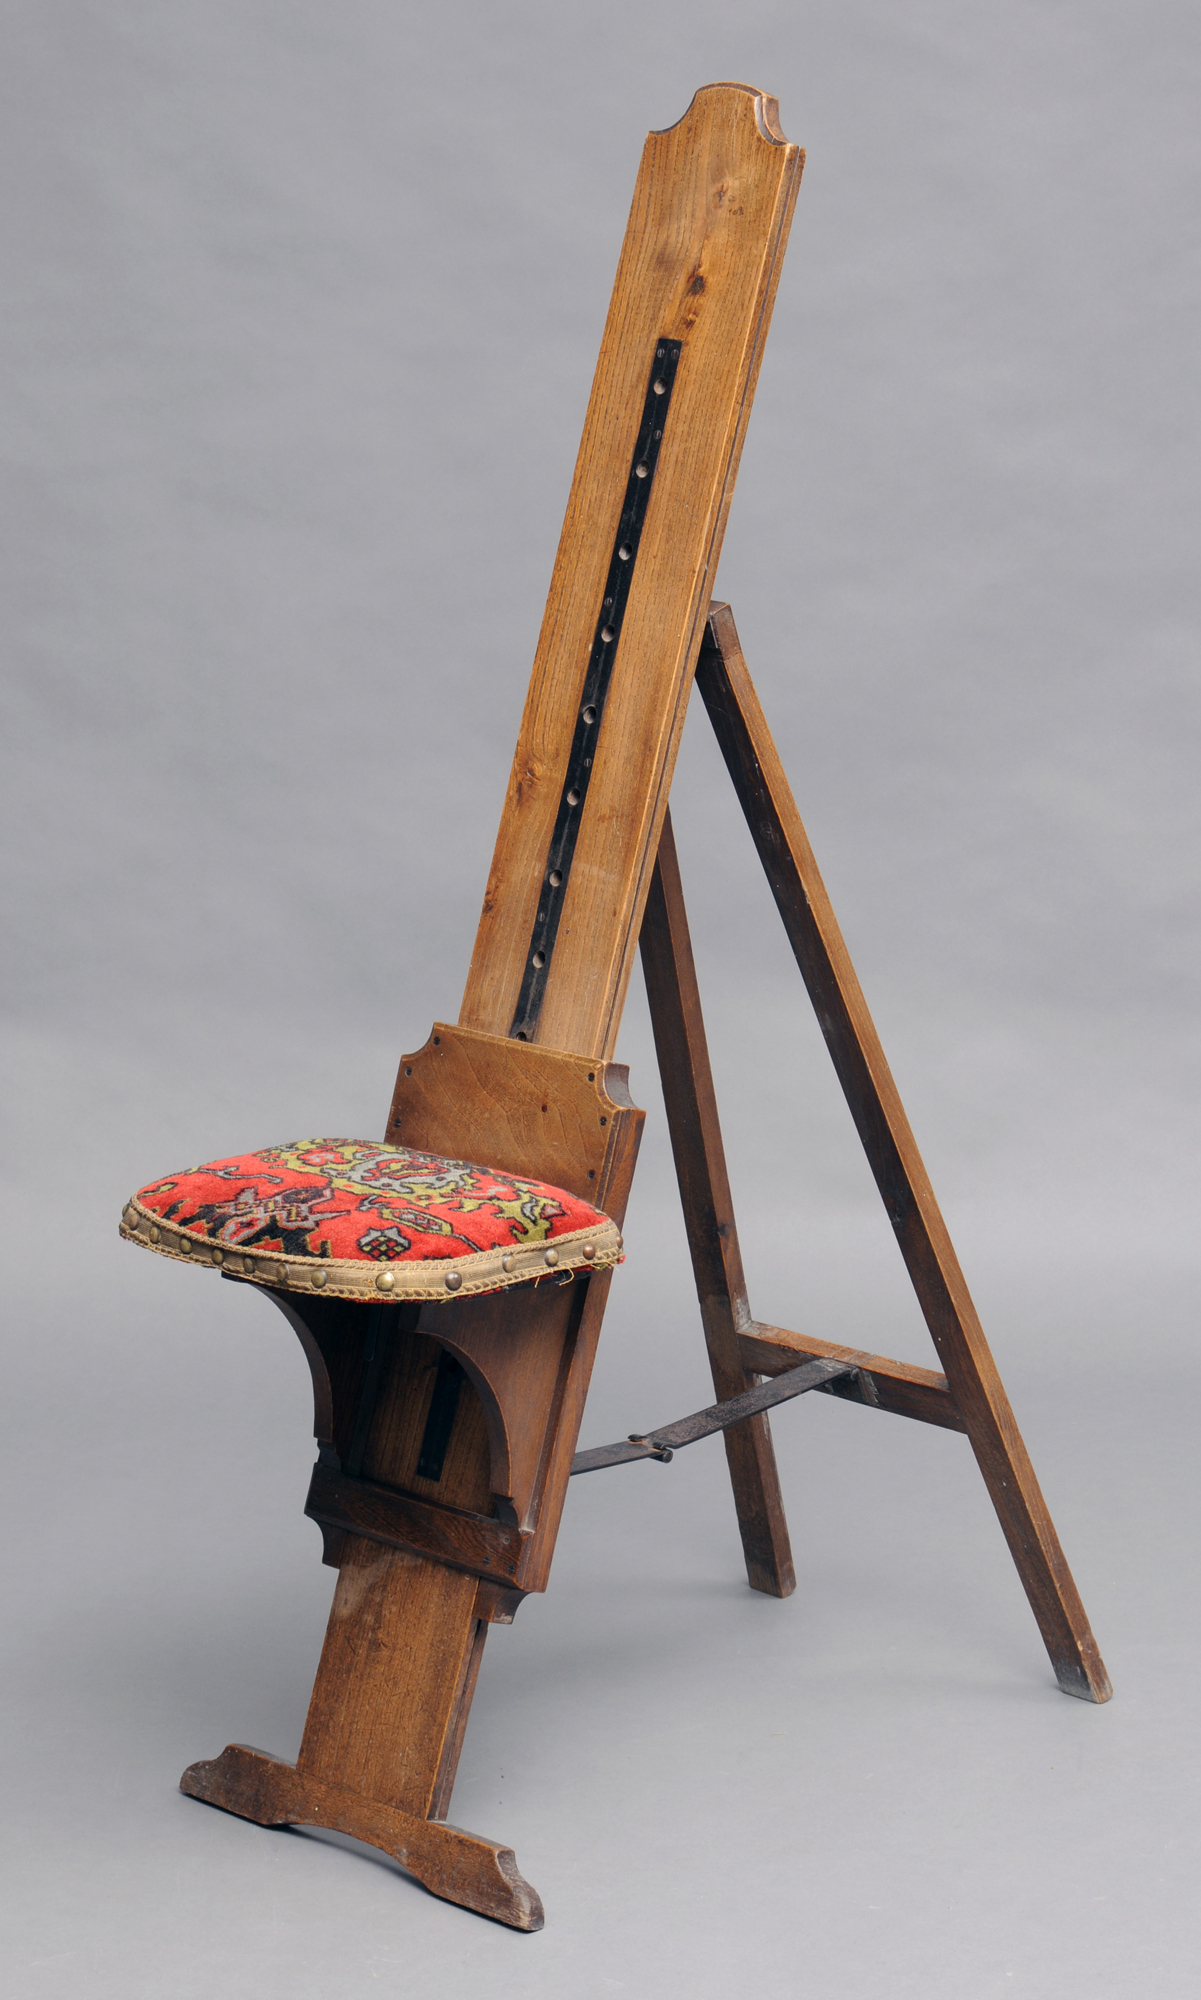 Victorian Traveling Combination Artists Easel and Seat